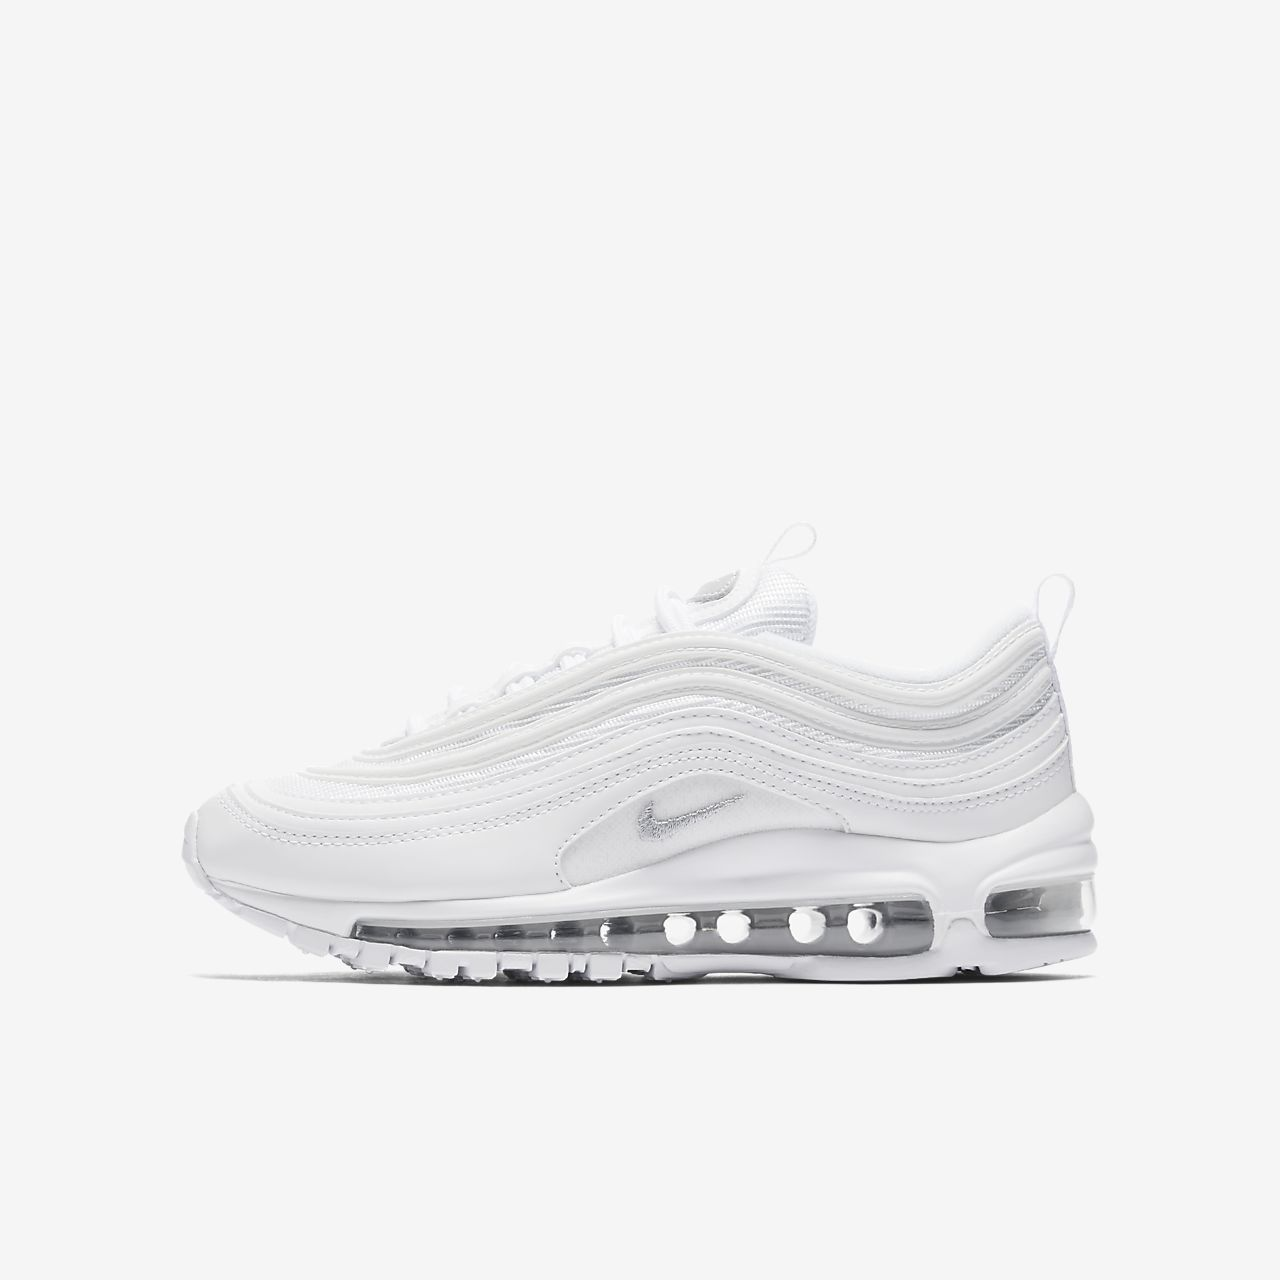 nike air max 97 release nederland